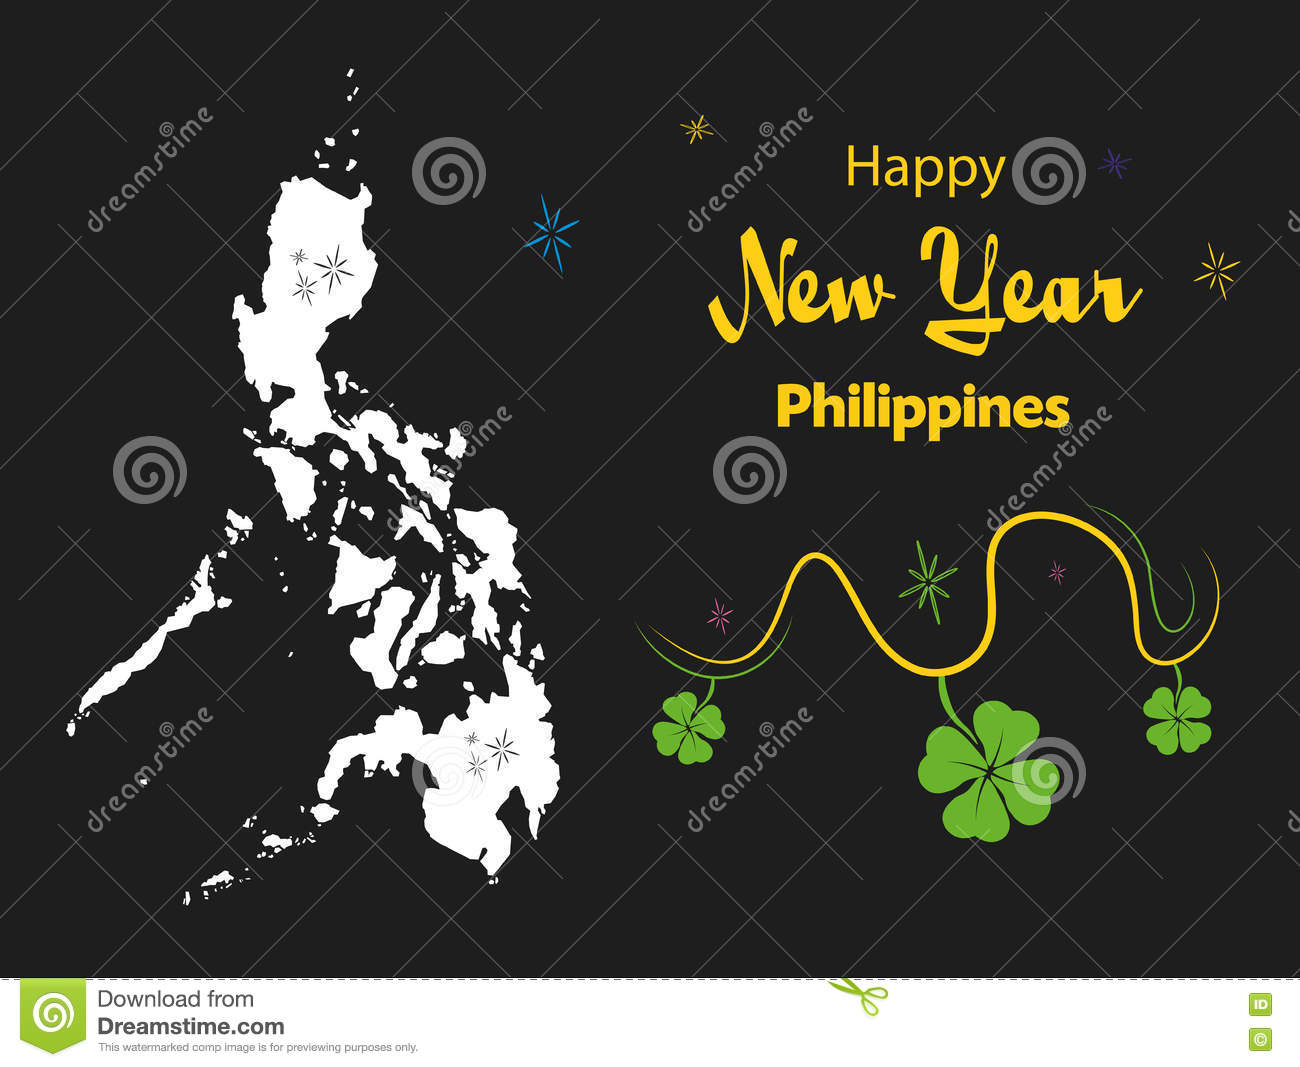 happy new year theme with map of philippines